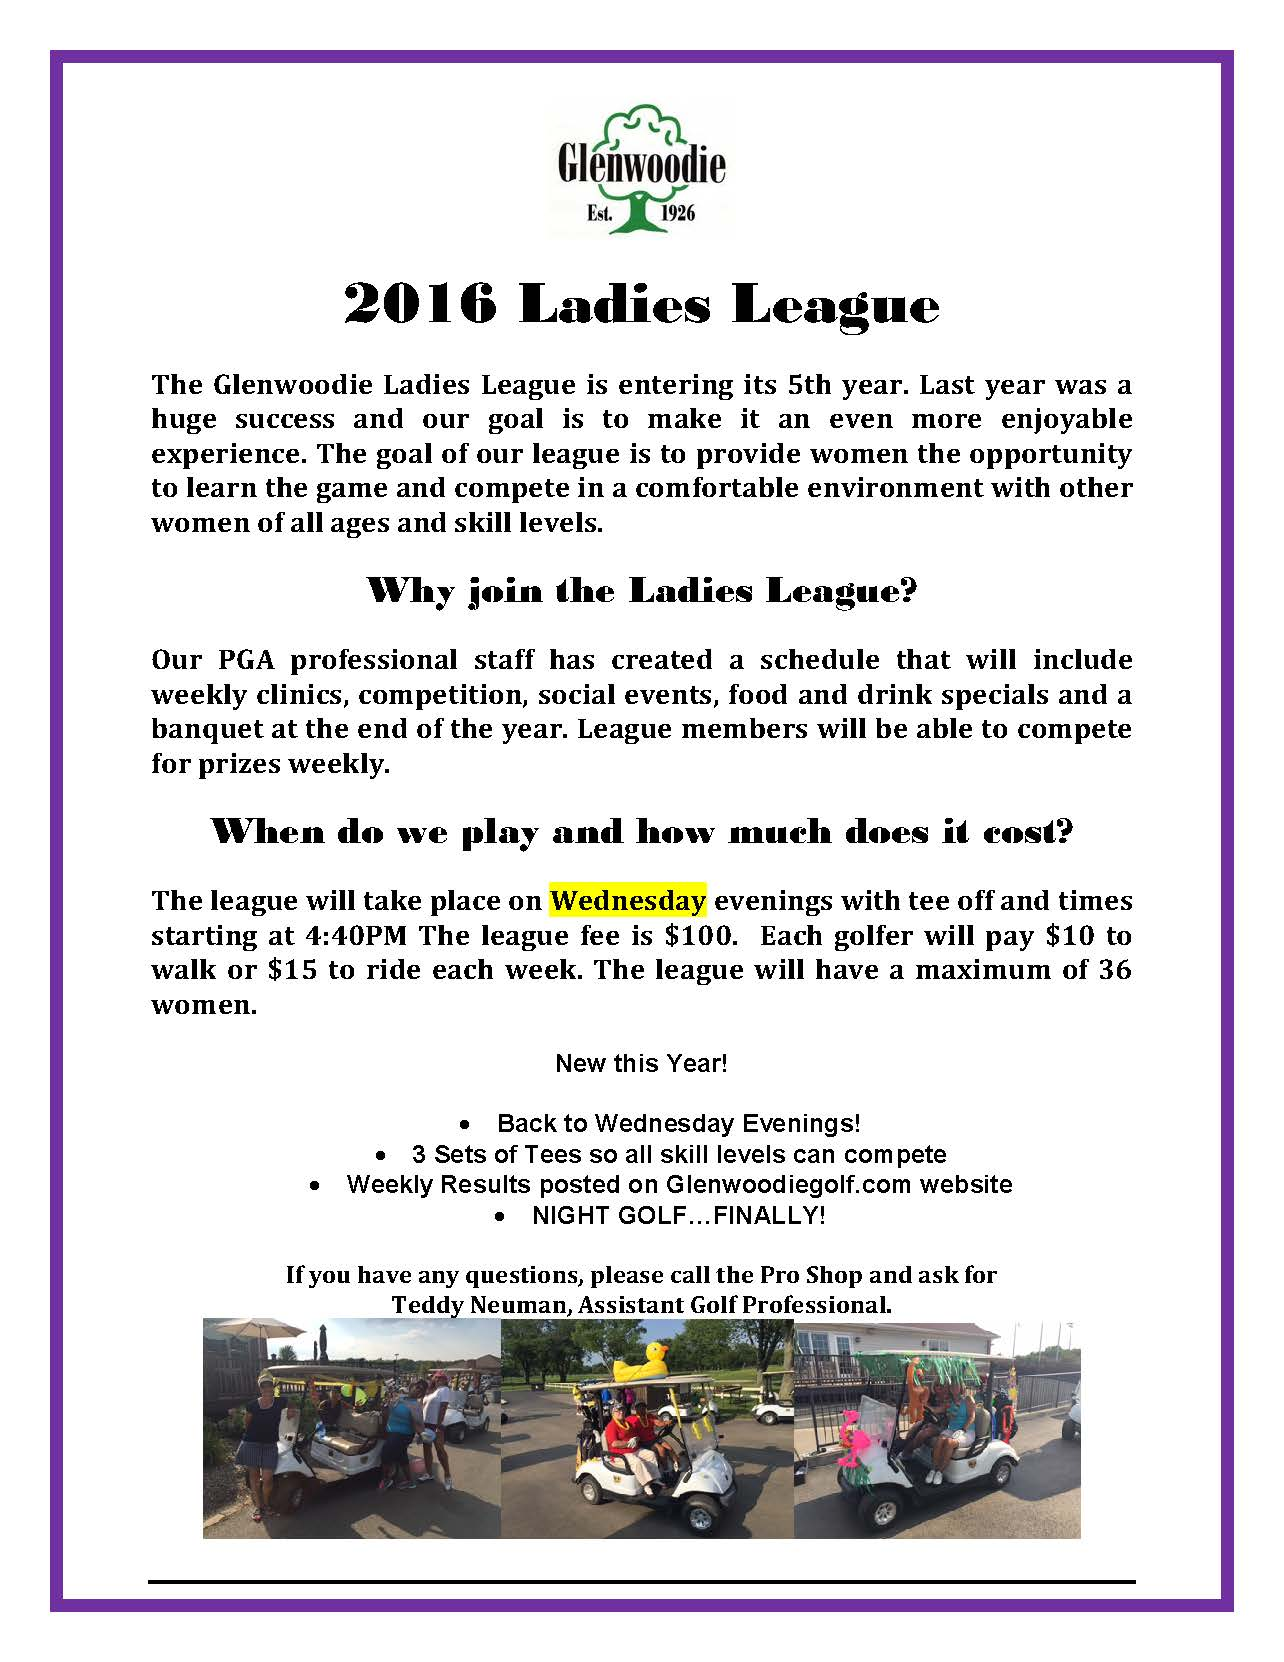 2016 ladies league Flyer_Page_1